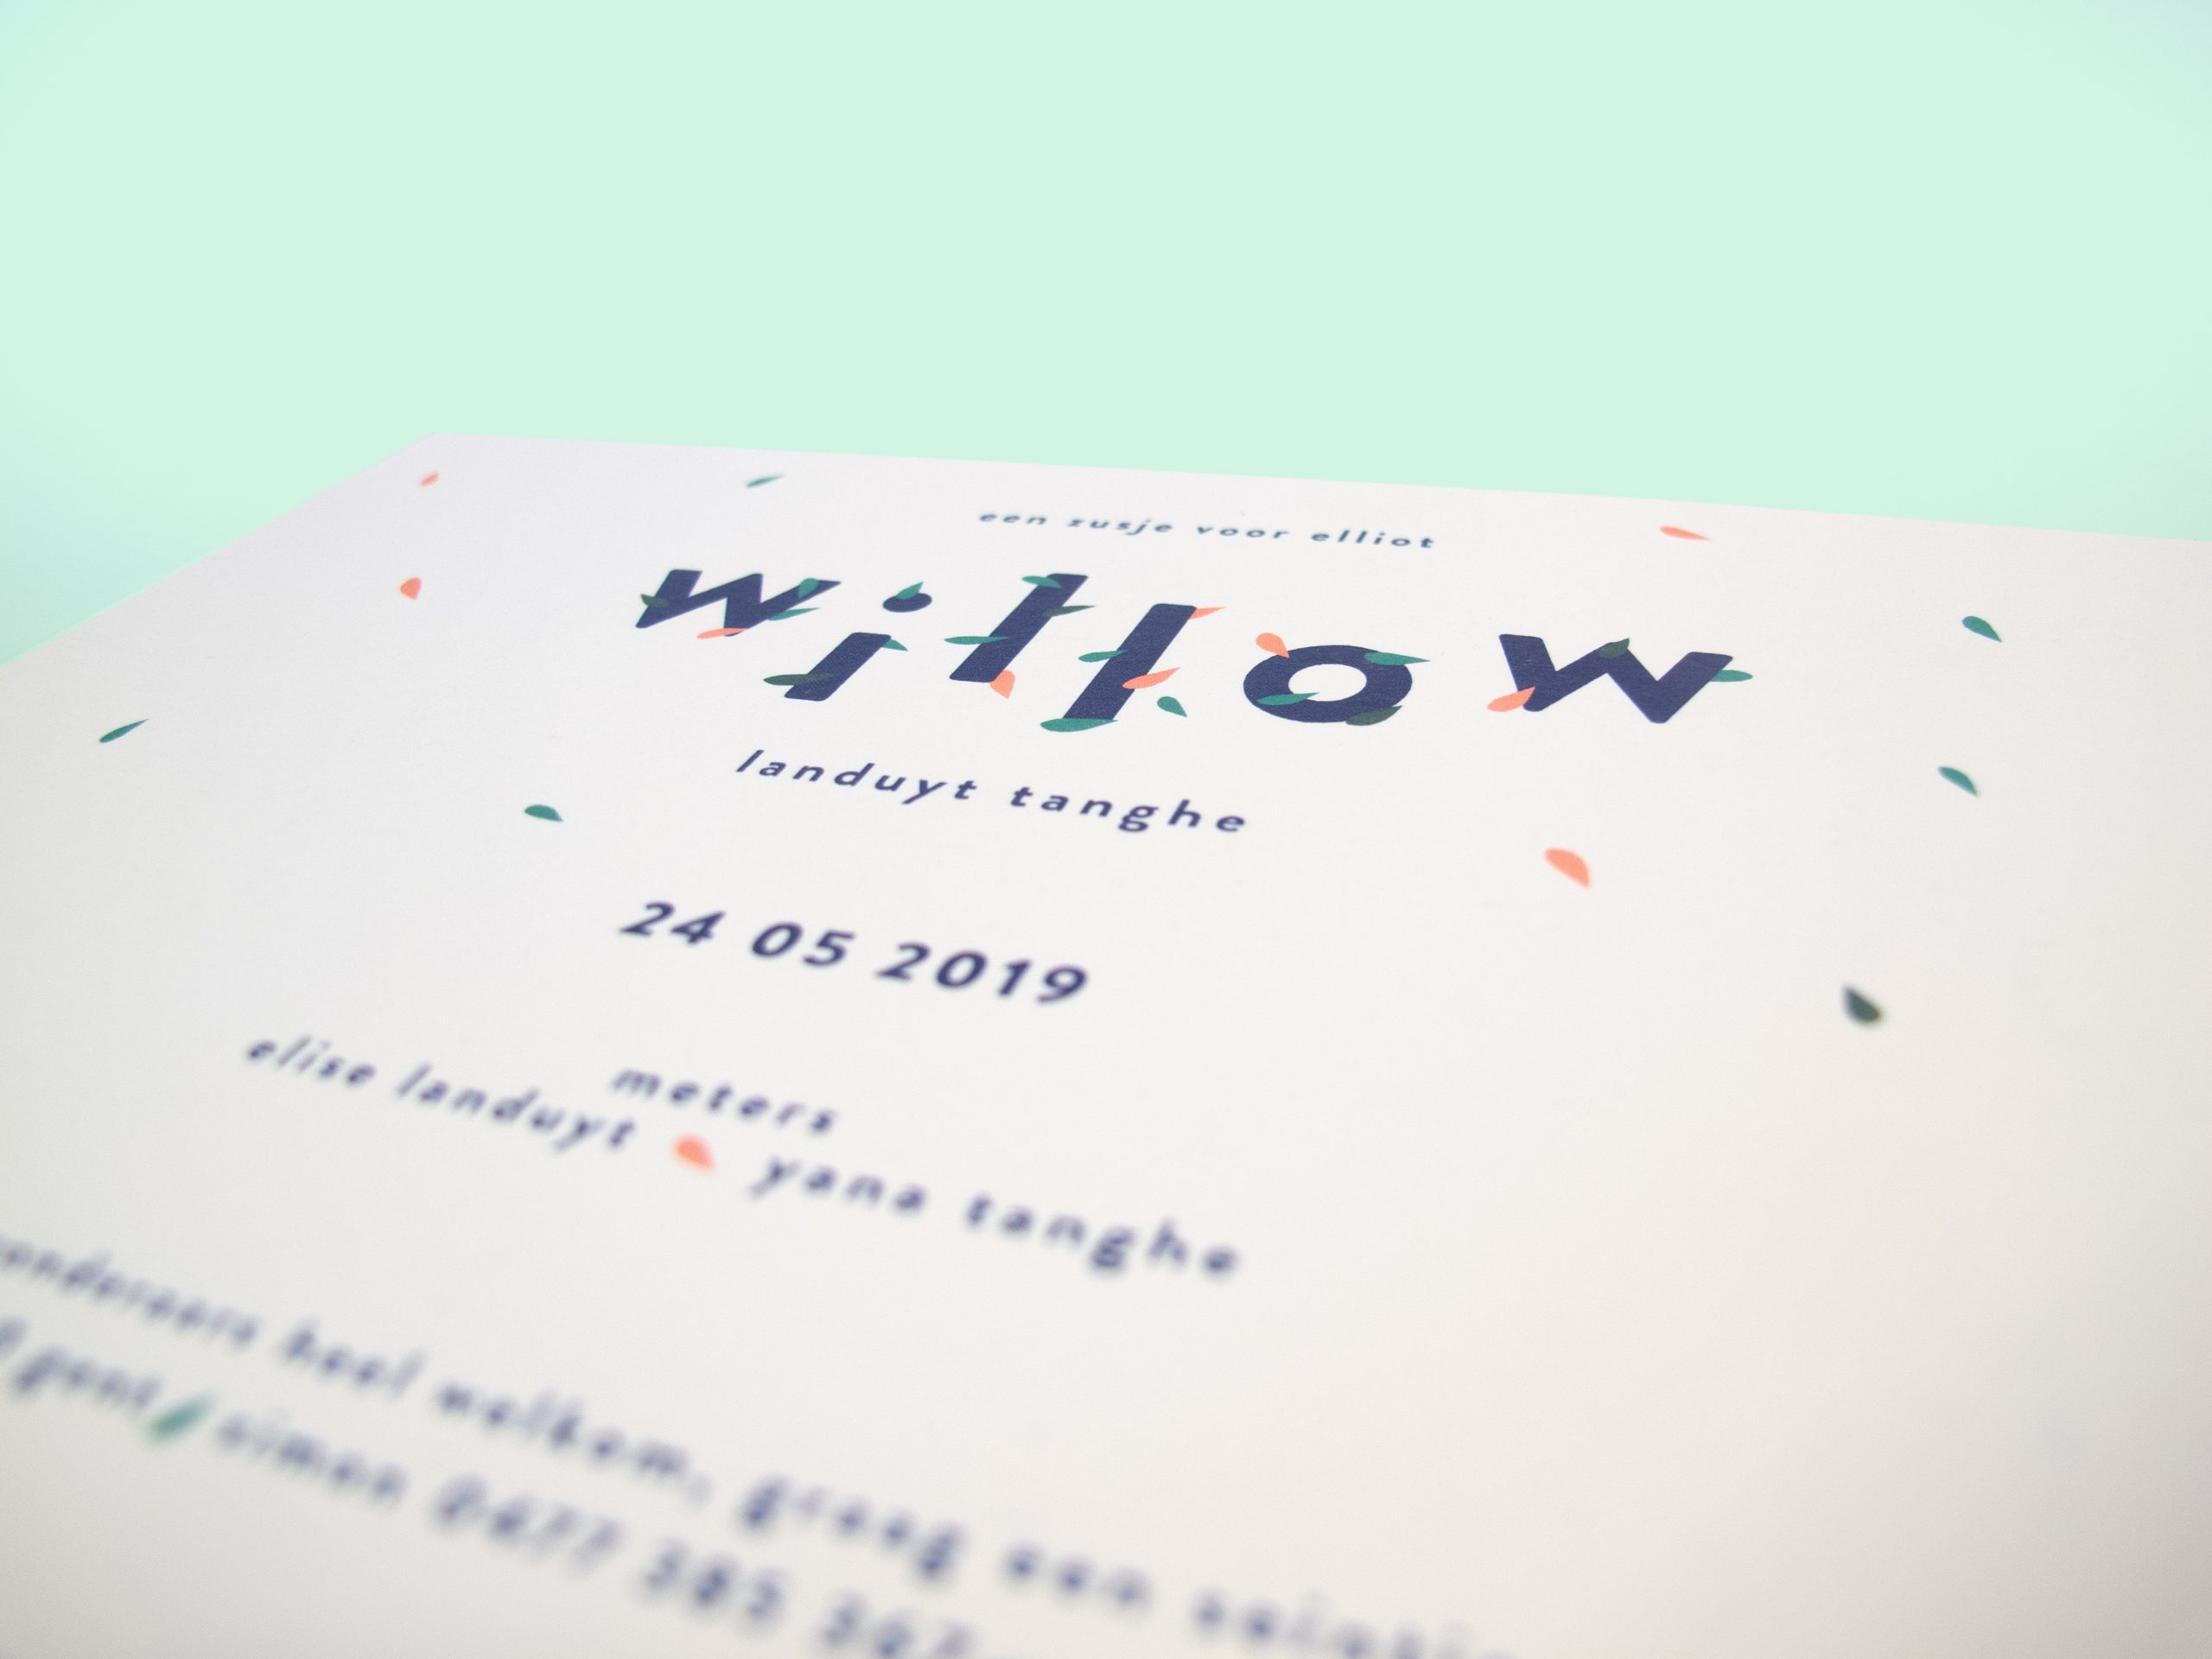 Willow_4